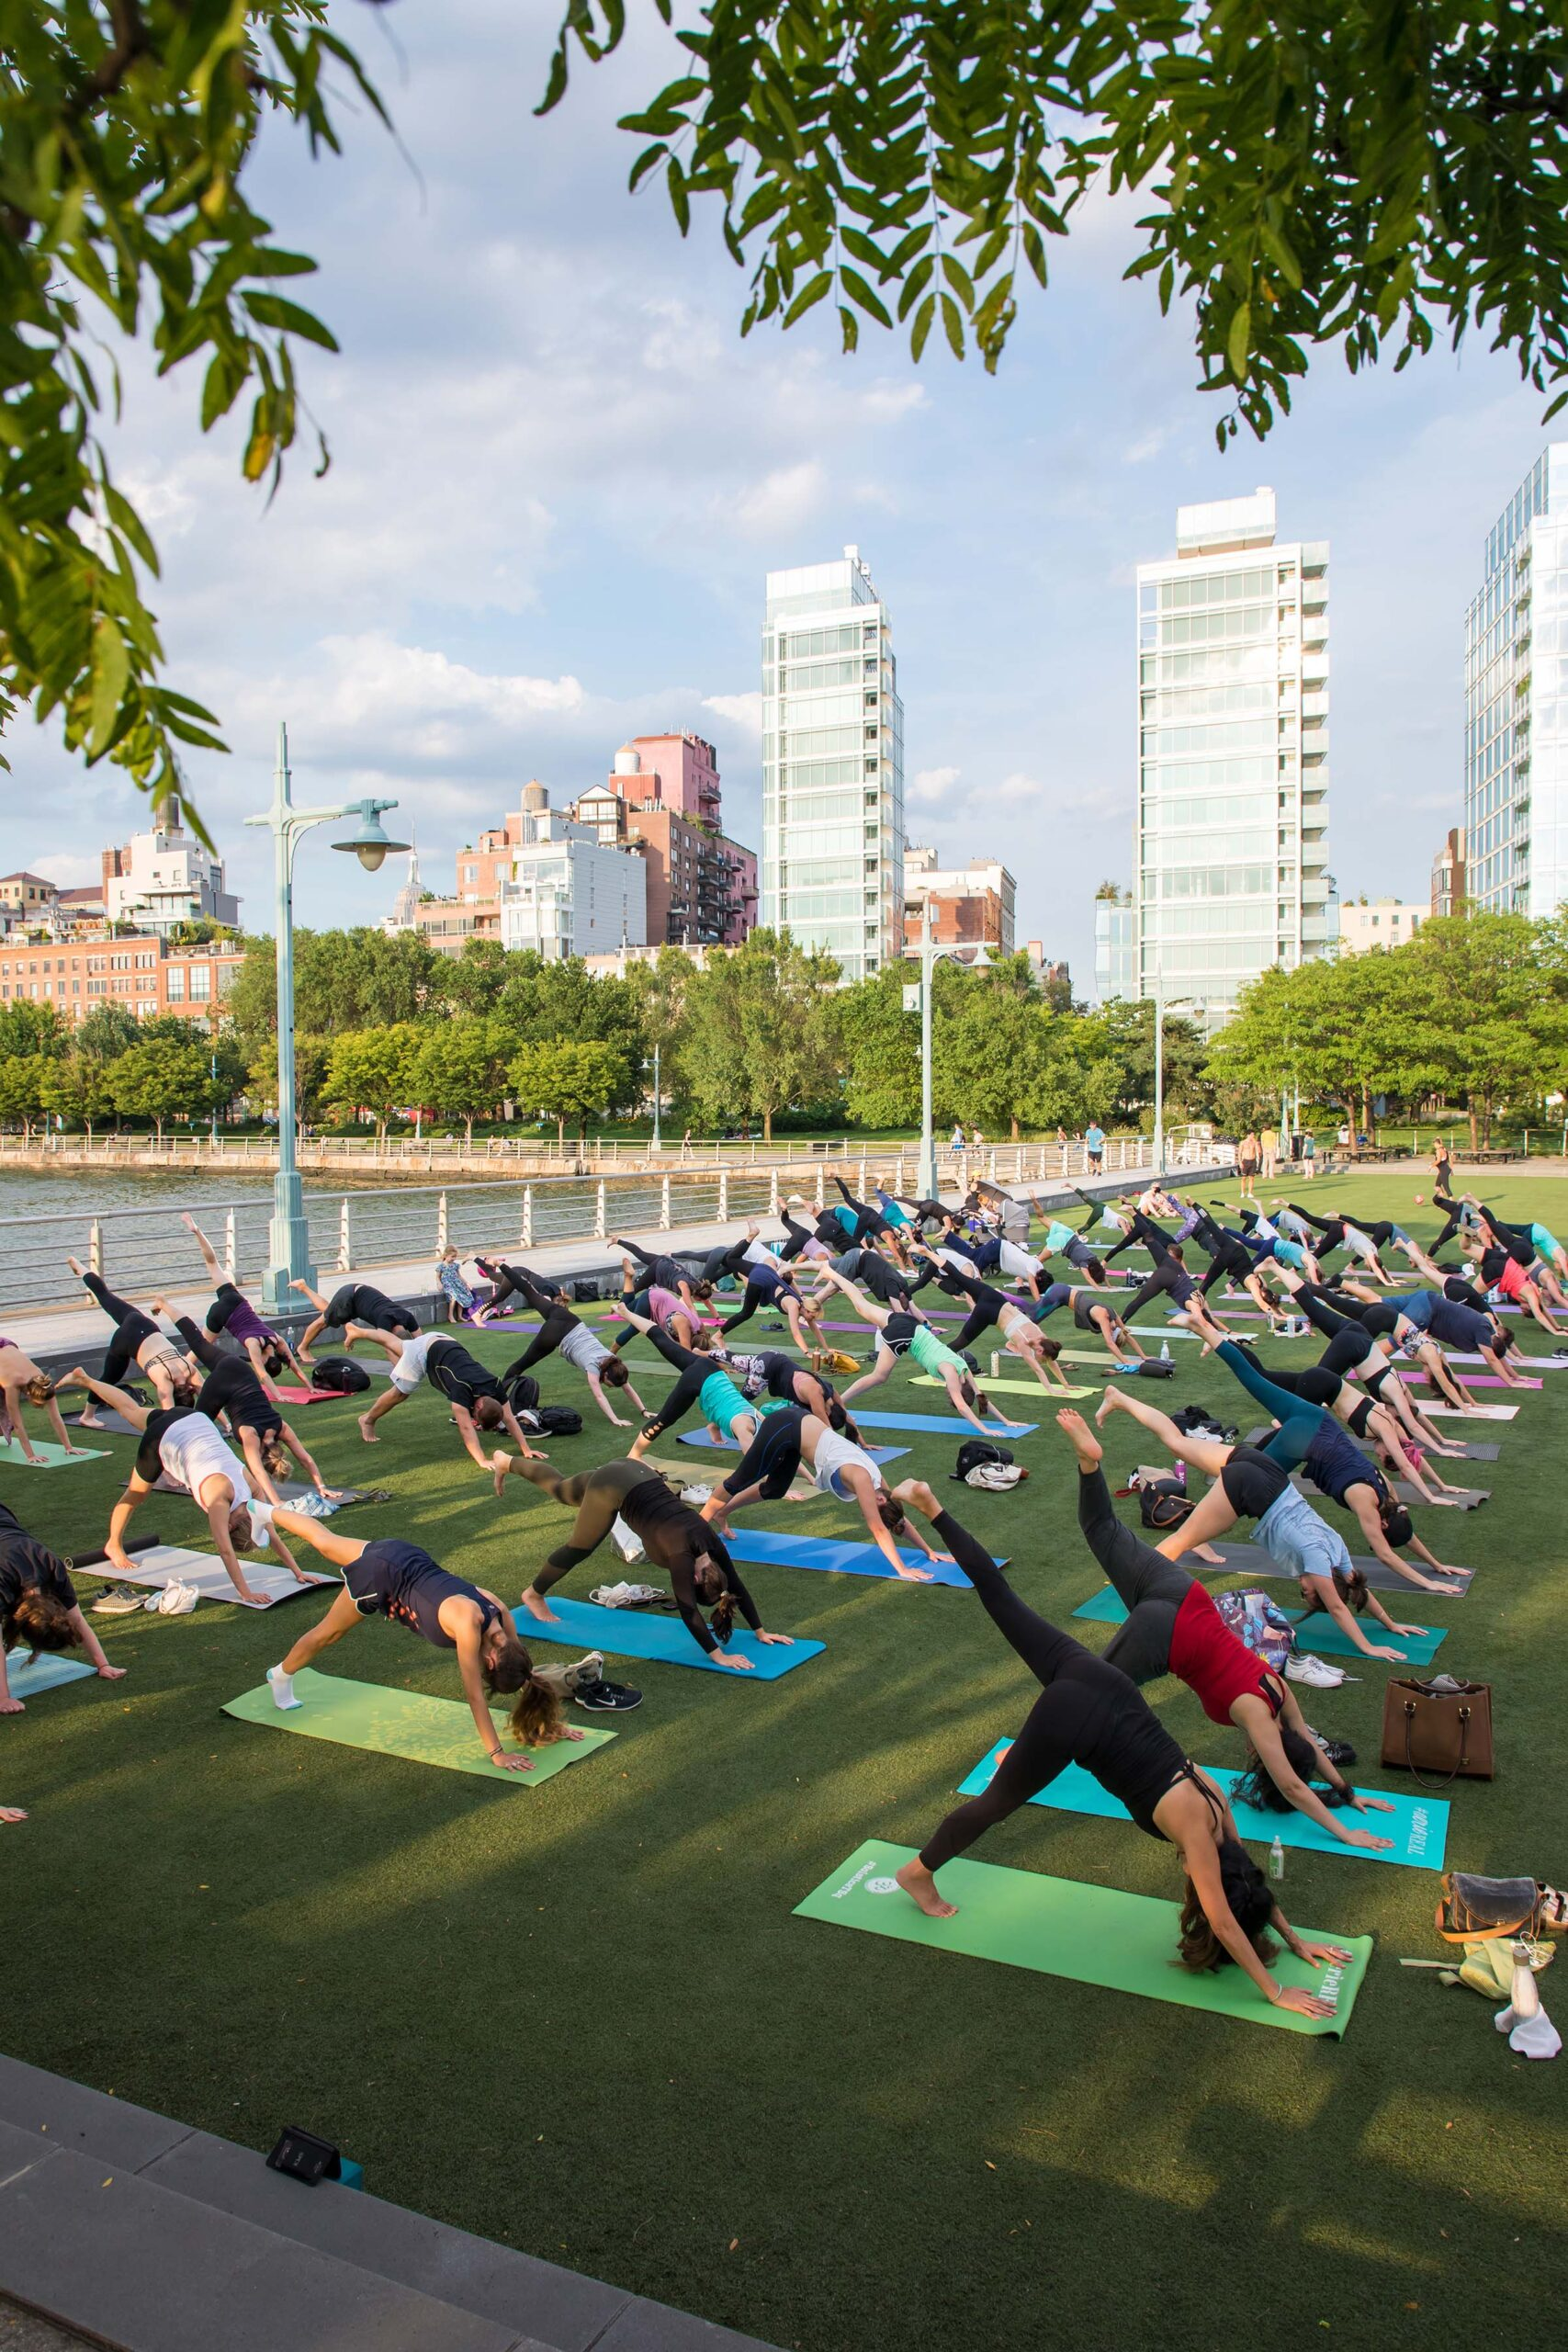 During a yoga class at Pier 46, the participants raise their legs in the air and press the ground